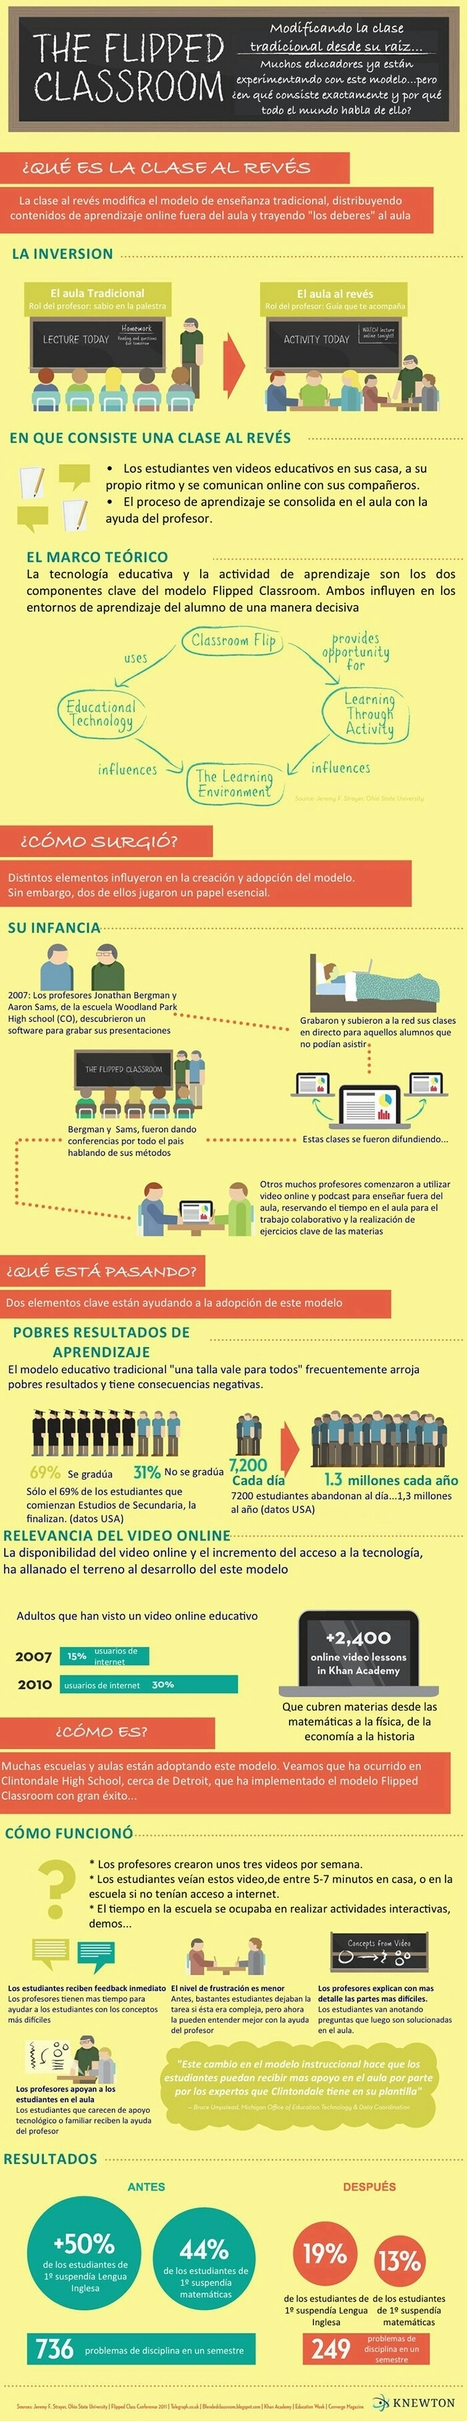 THE FLIPPED CLASSROOM ¿Qué es la clase al revés? | Jorge Leal | Scoop.it